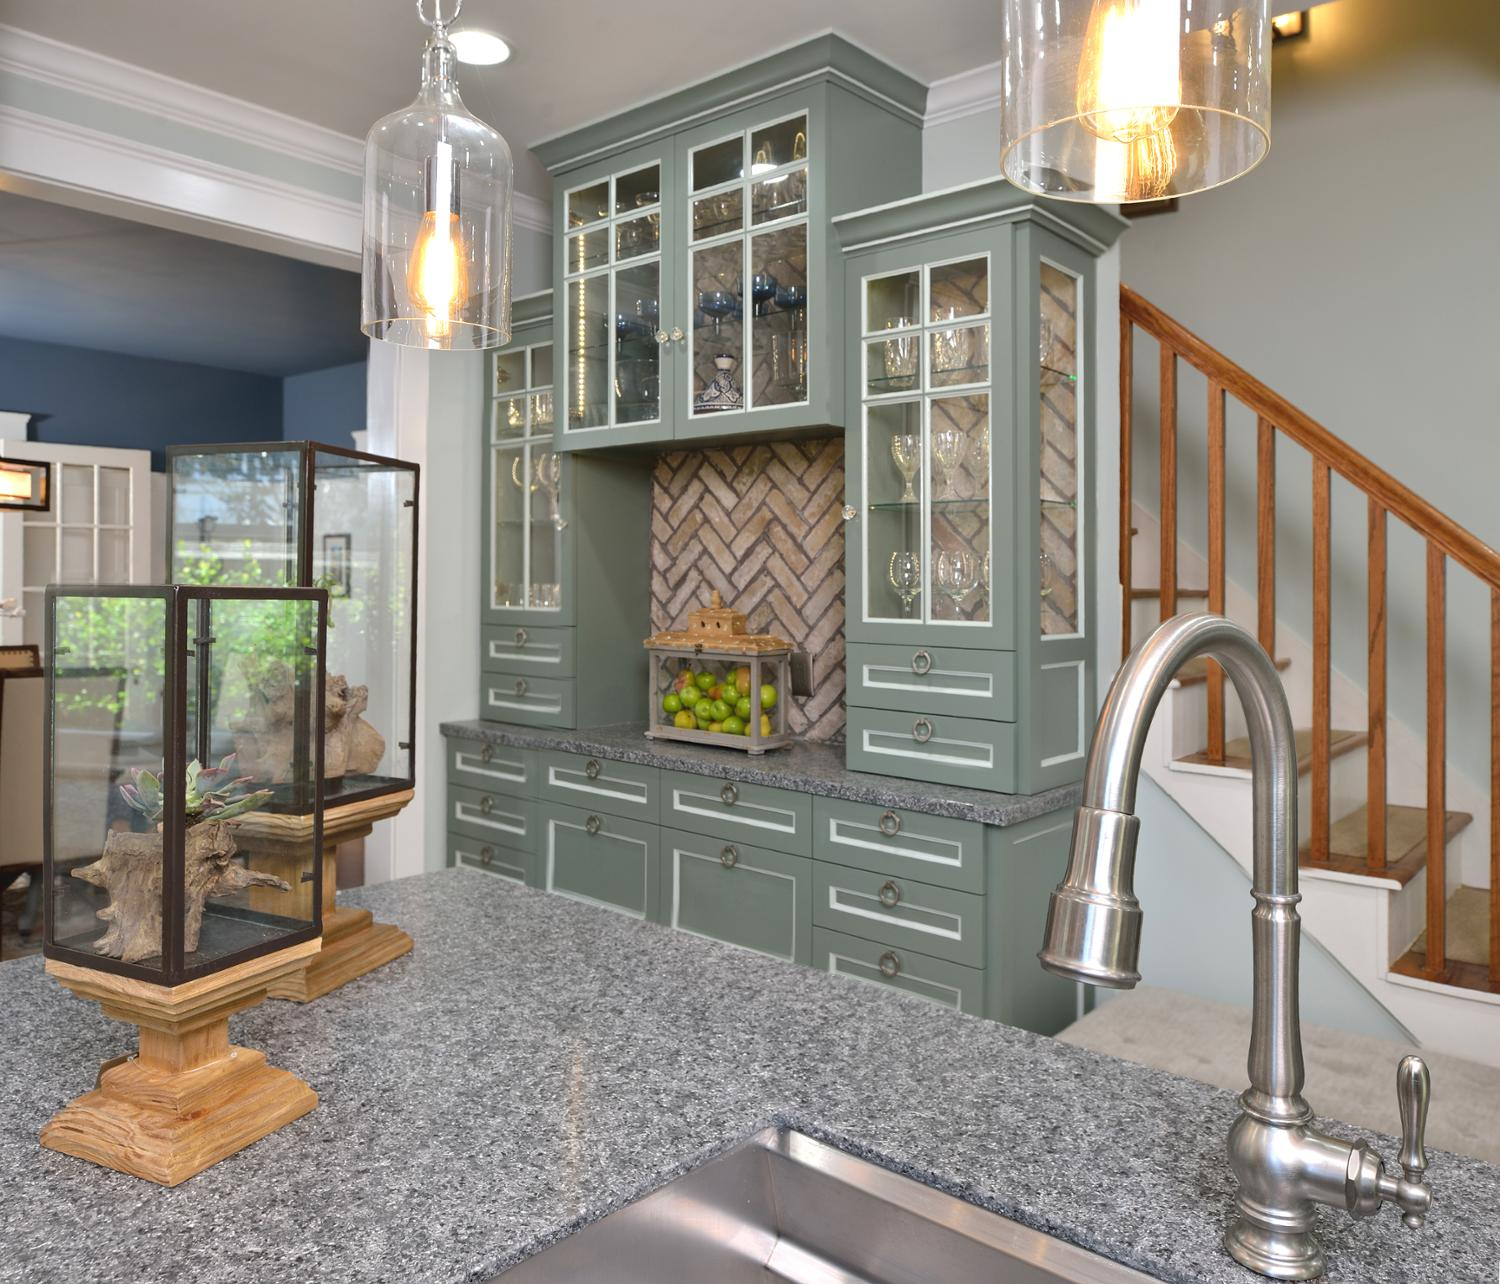 Uncategorized. Kitchen Remodeling Wilmington Nc. jamesmcavoybr Home ...